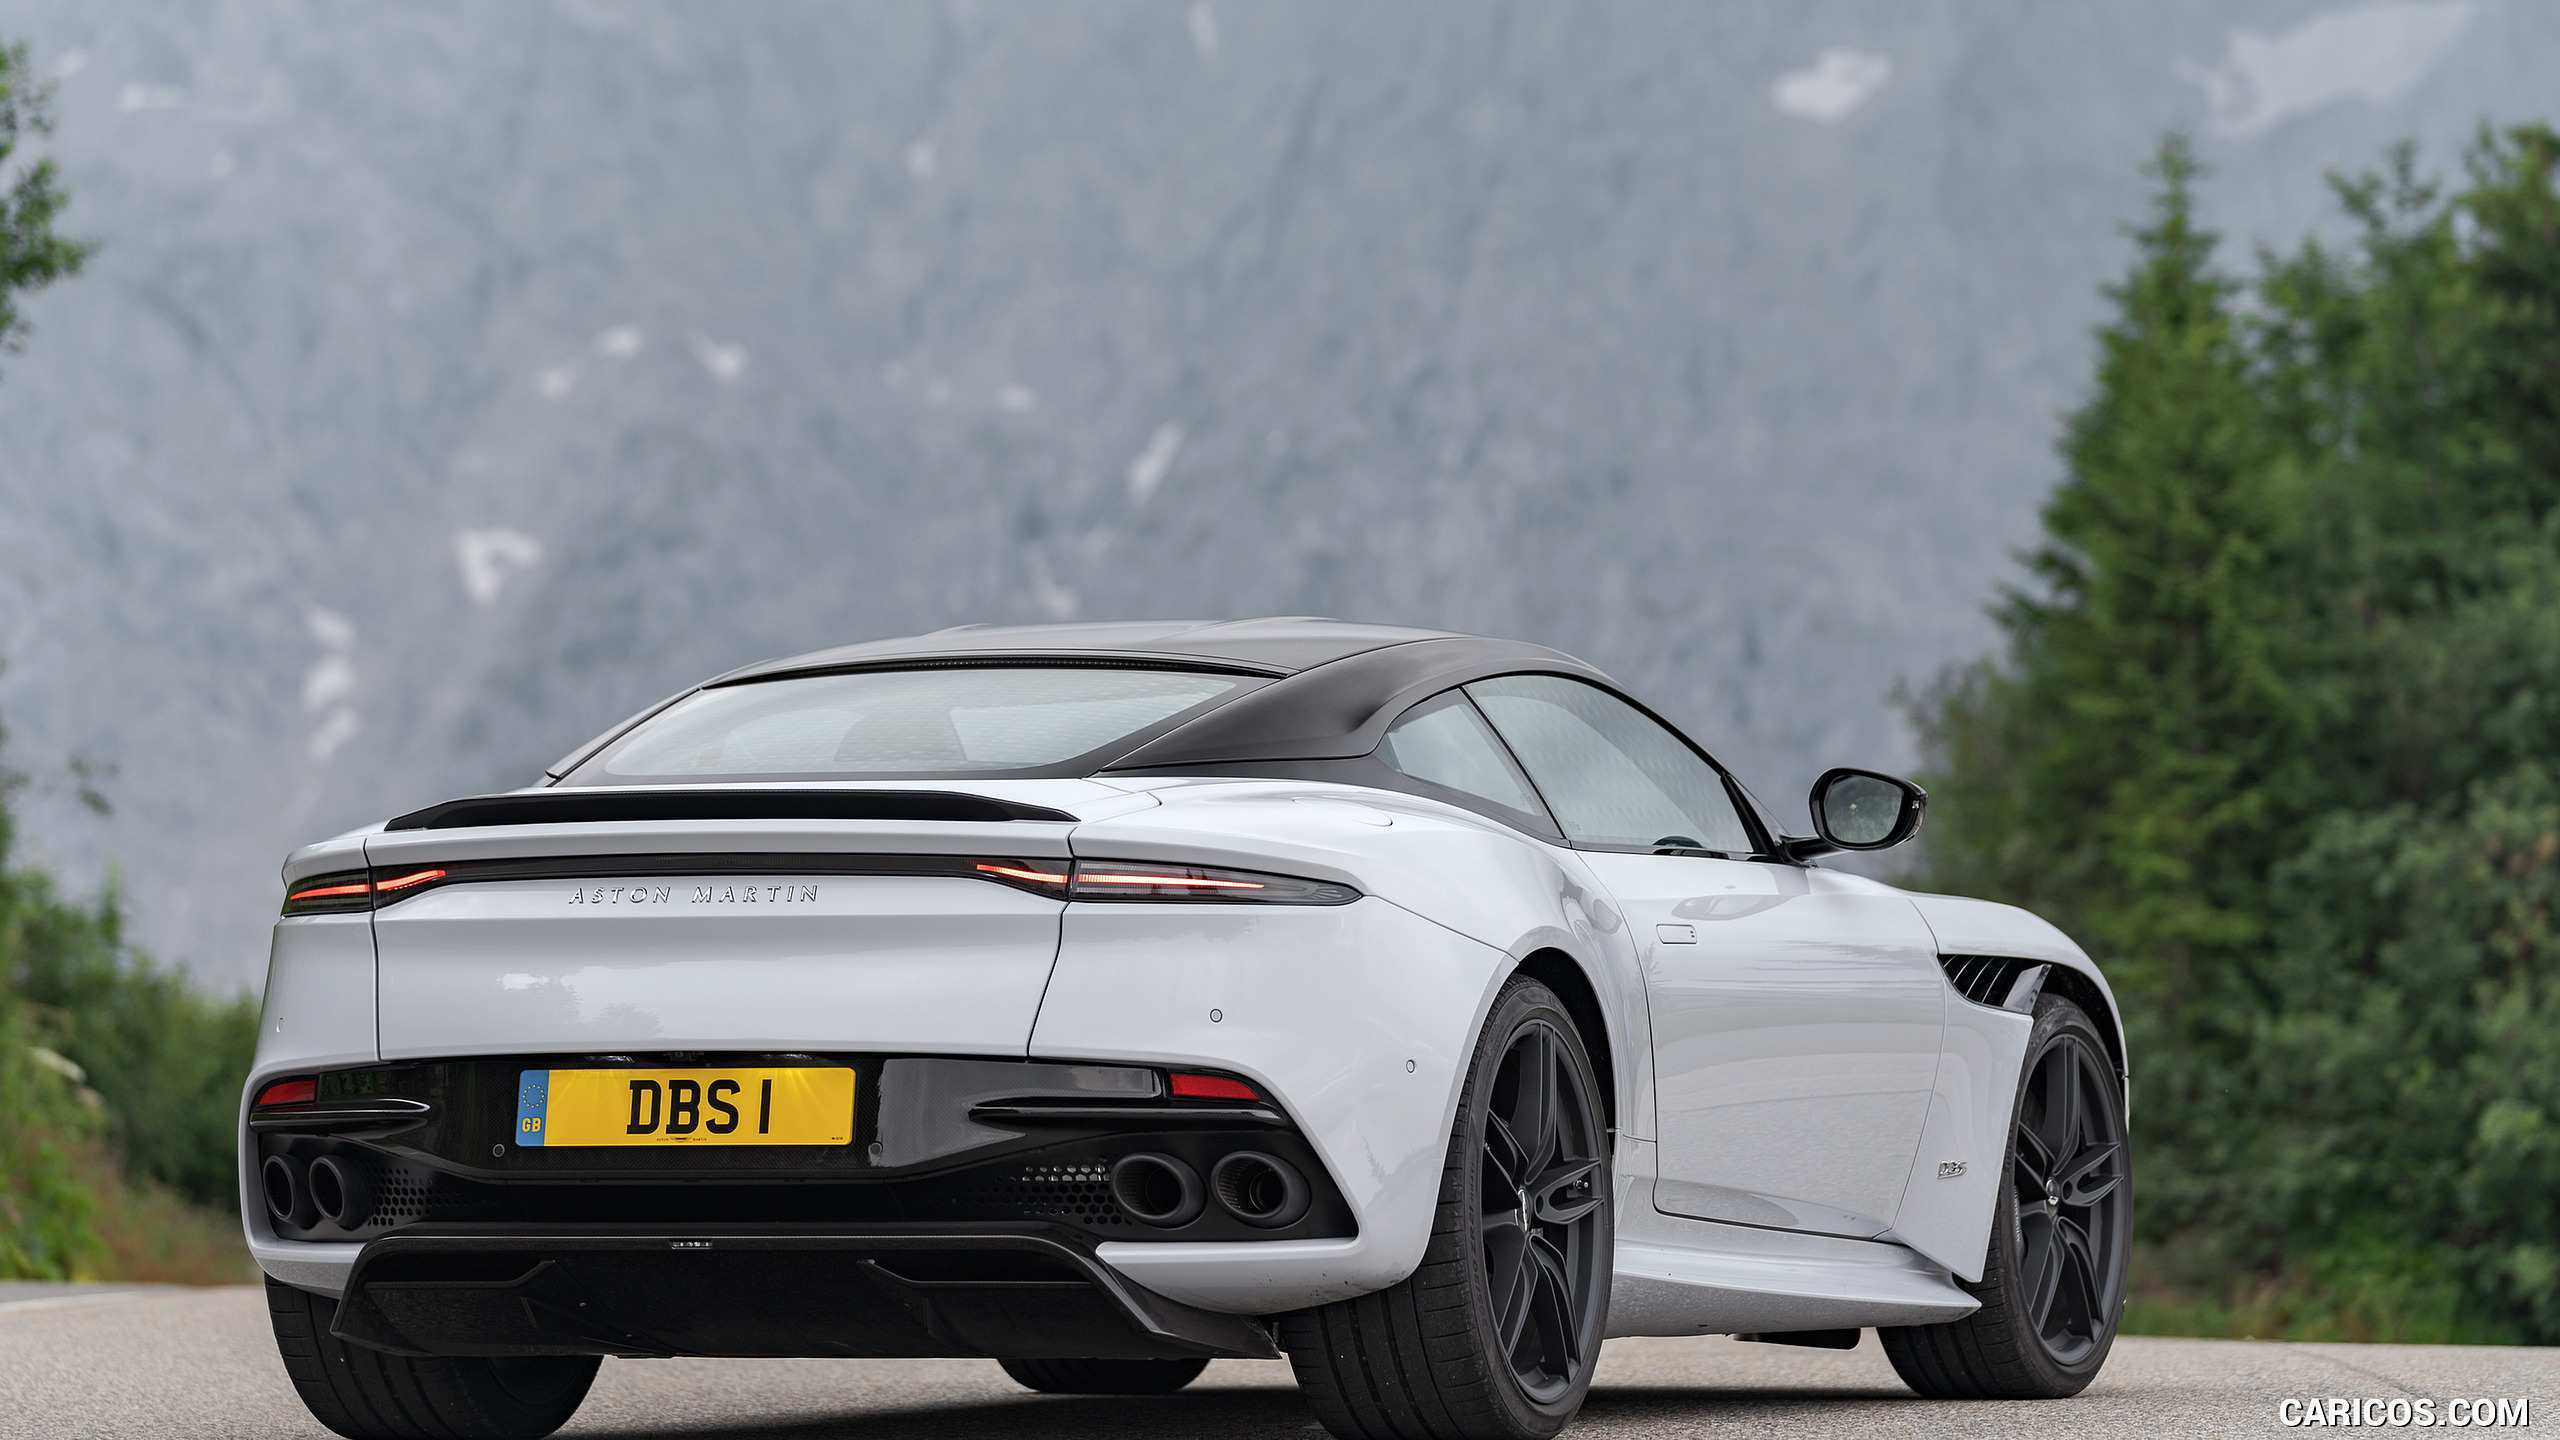 59 Great 2019 Aston Dbs Exterior and Interior by 2019 Aston Dbs